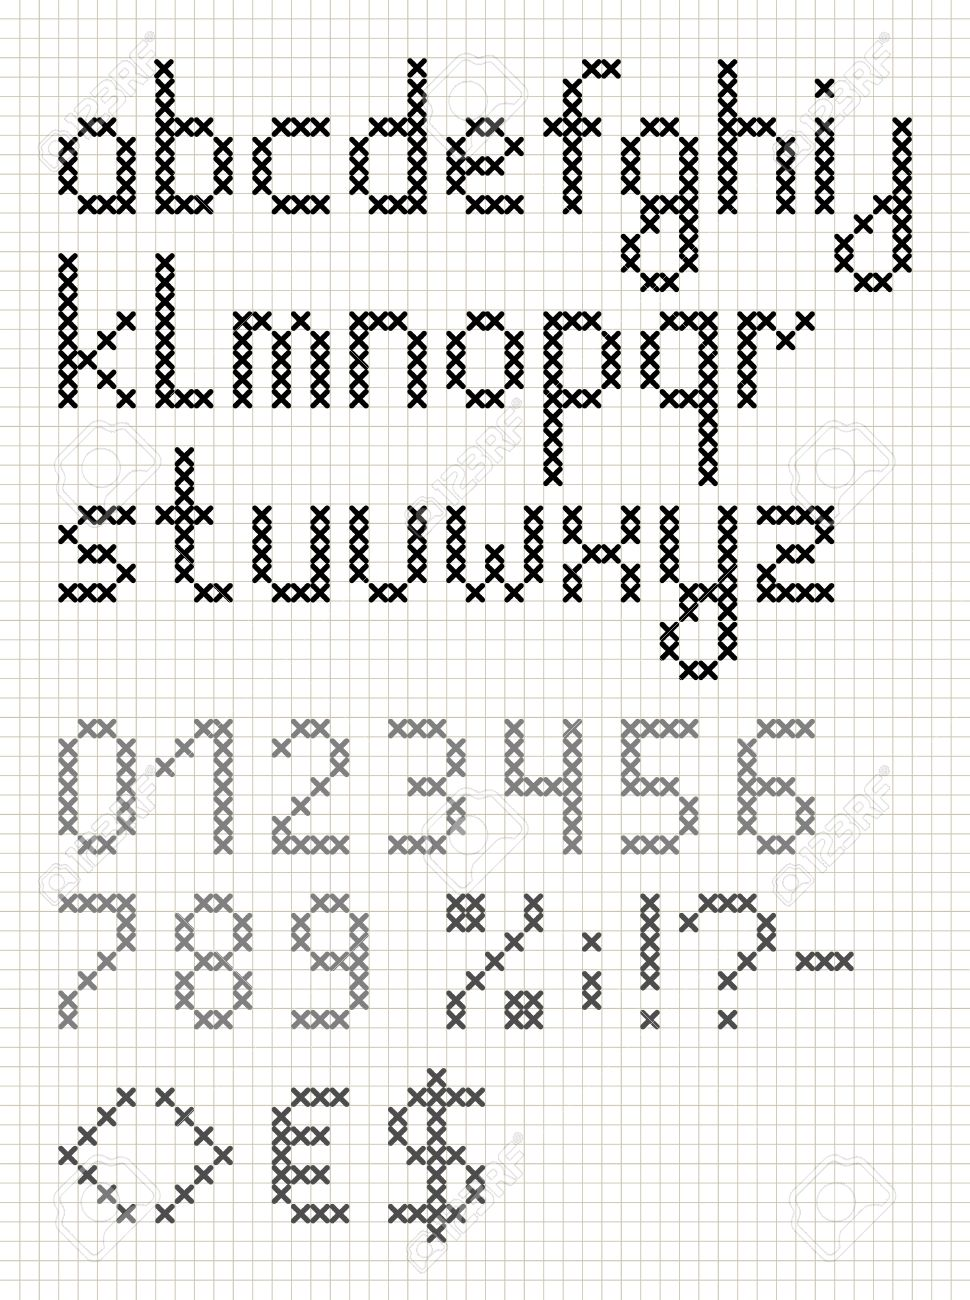 Cross Stitch English Alphabet With Numbers And Symbols Lower